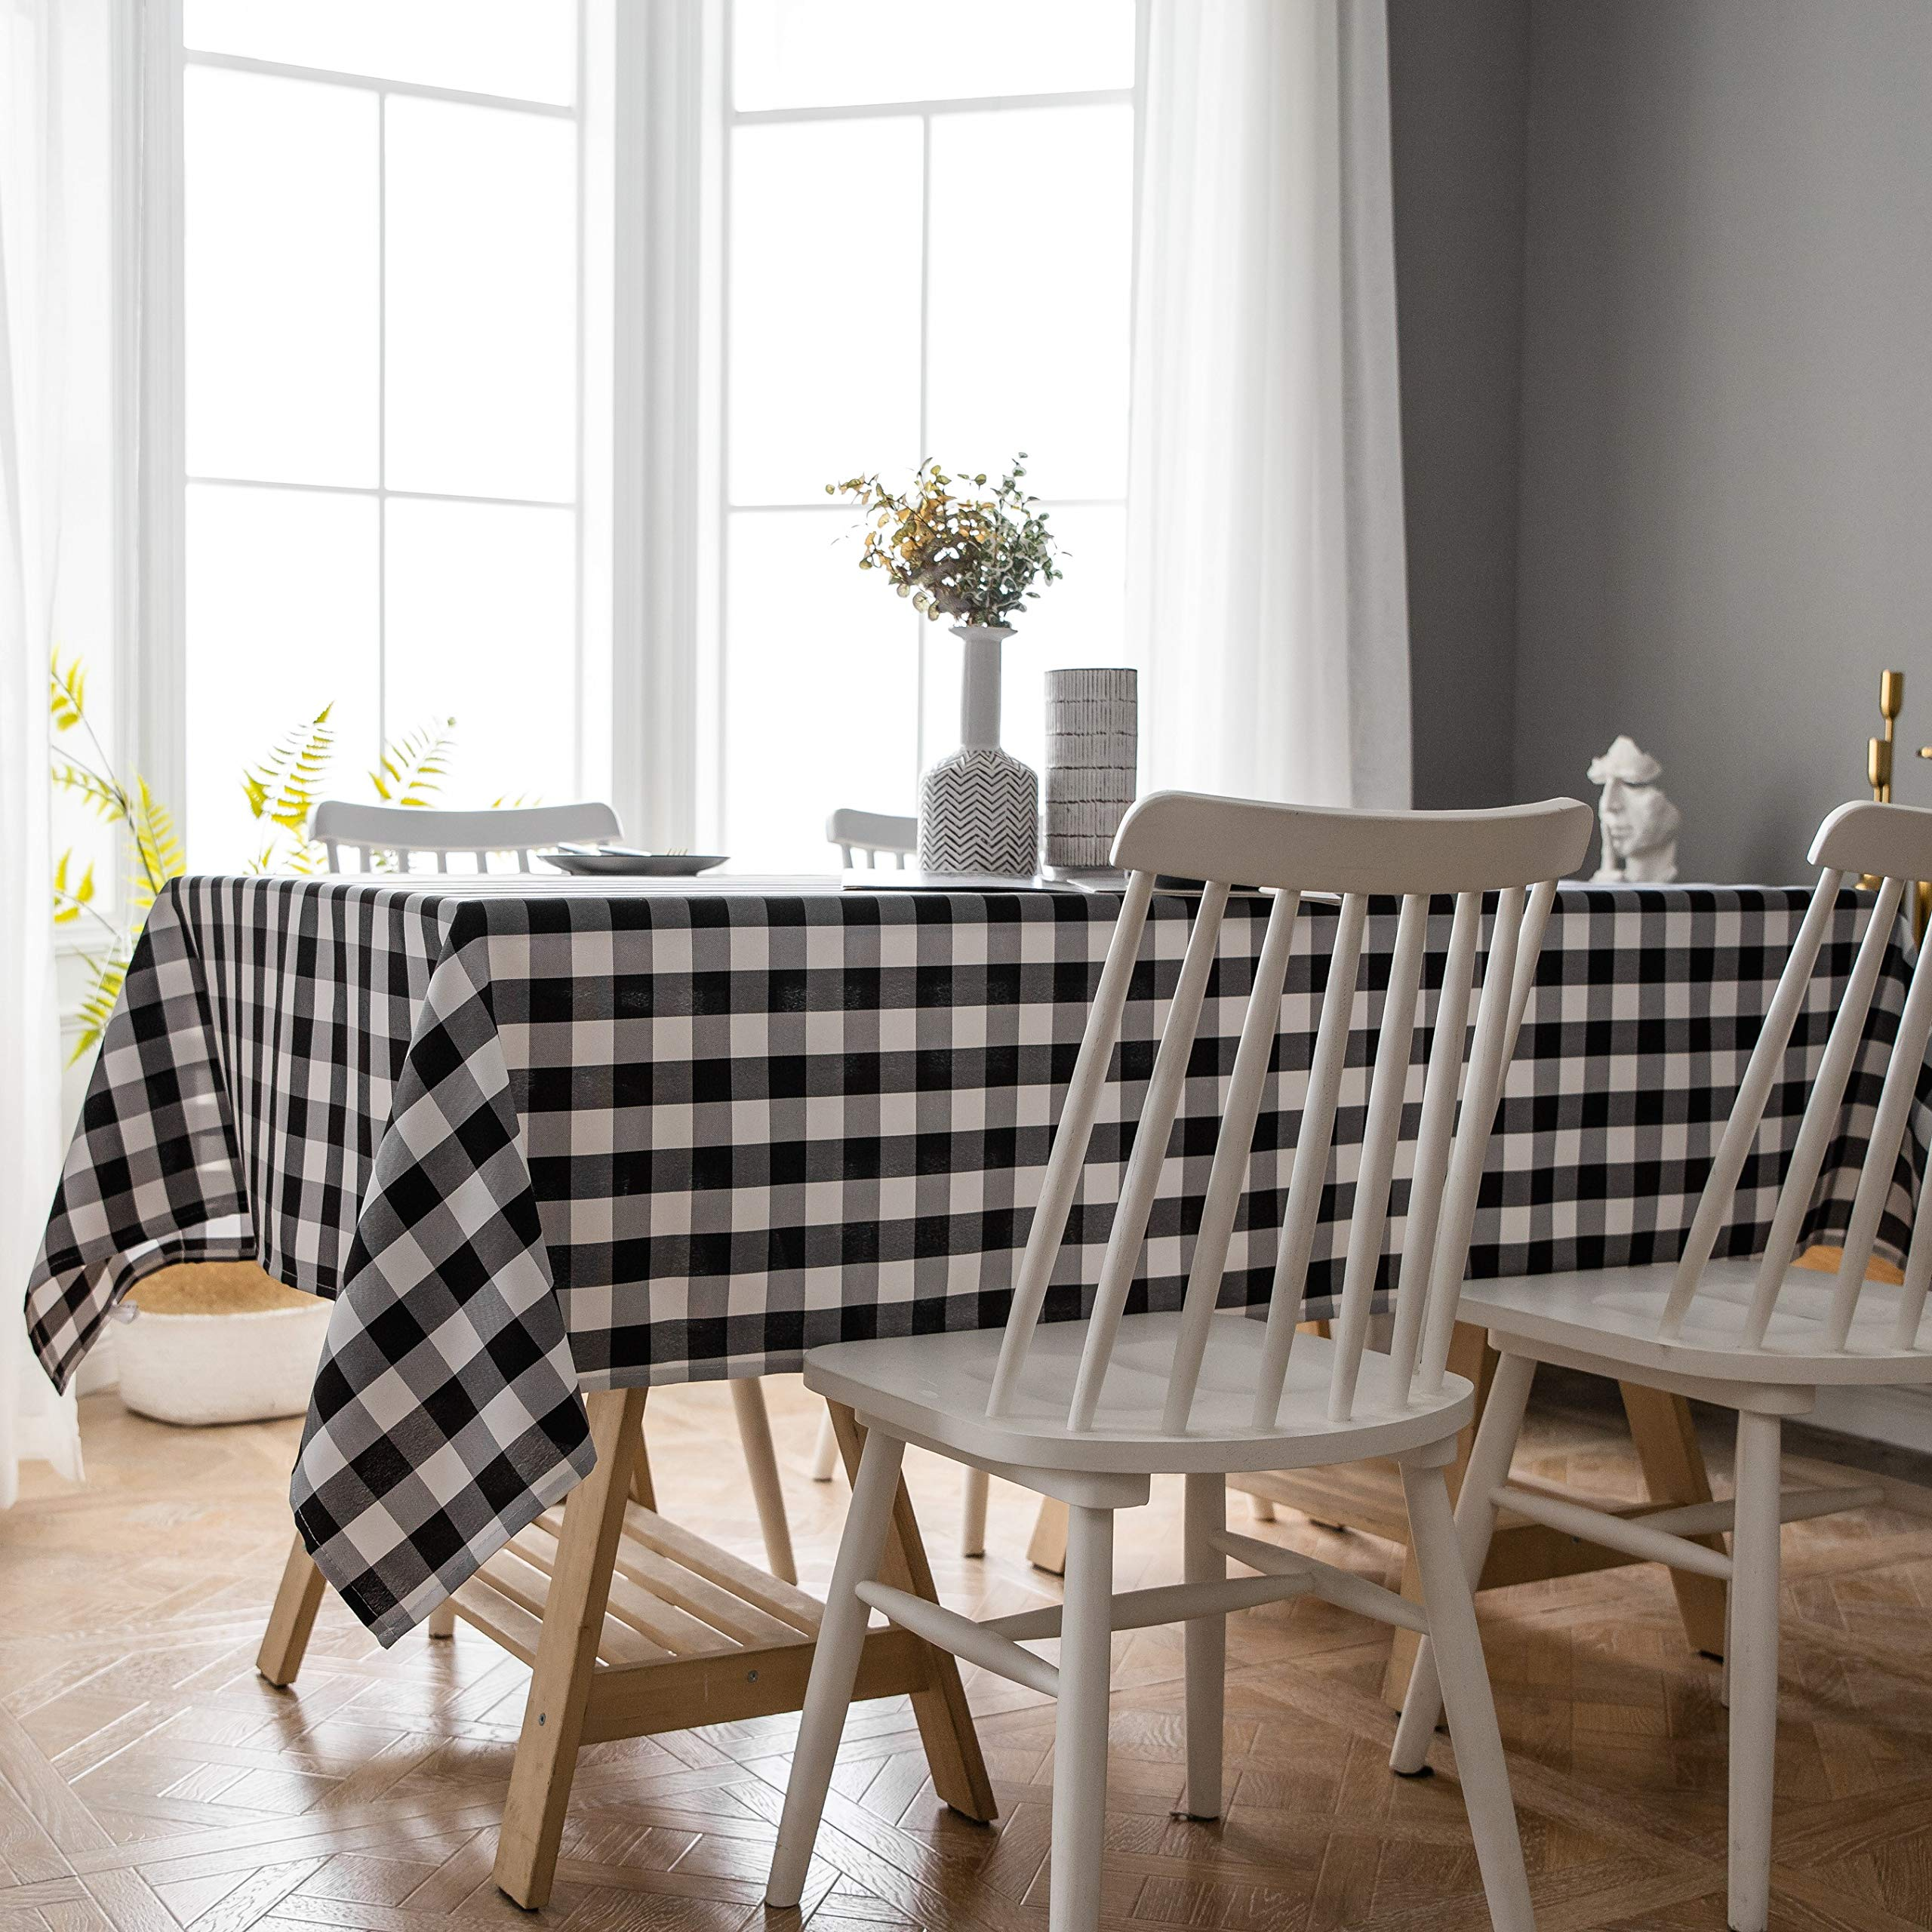 Aquazolax Black and White Buffalo Check Tablecloth Country Farmhouse Rustic Table Covers for Parties/Gatherings, 60x84 inch, Black by Aquazolax